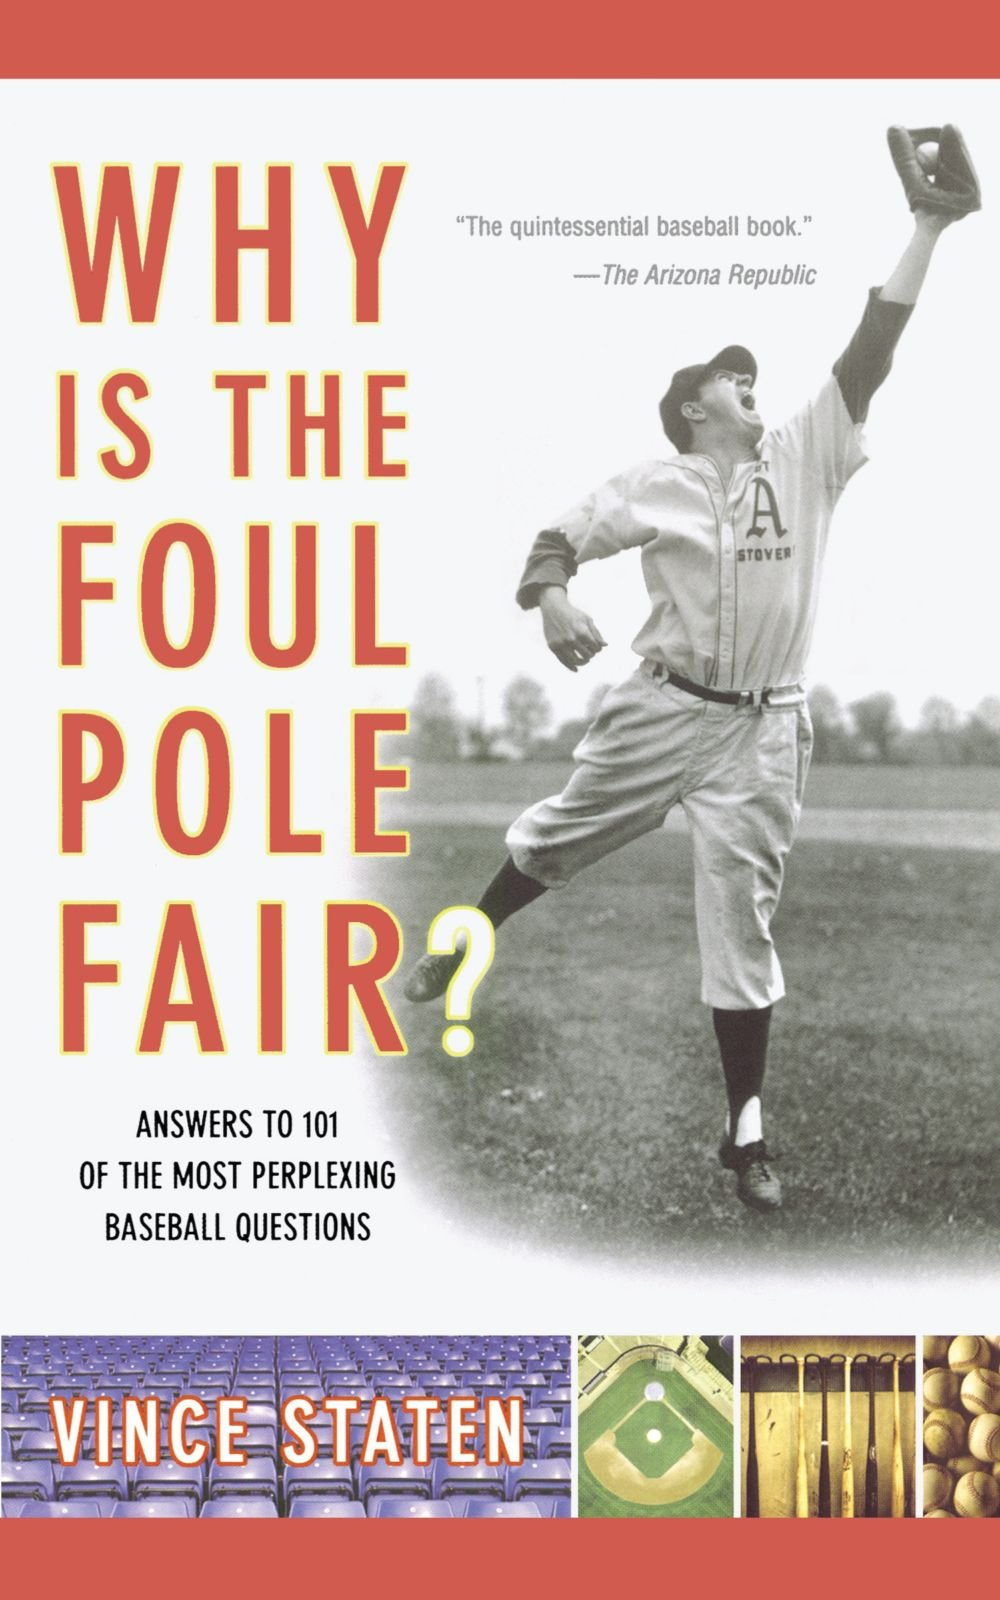 why is the foul pole fair answers to 101 of the most perplexing why is the foul pole fair answers to 101 of the most perplexing baseball questions vince staten 9780743257916 com books